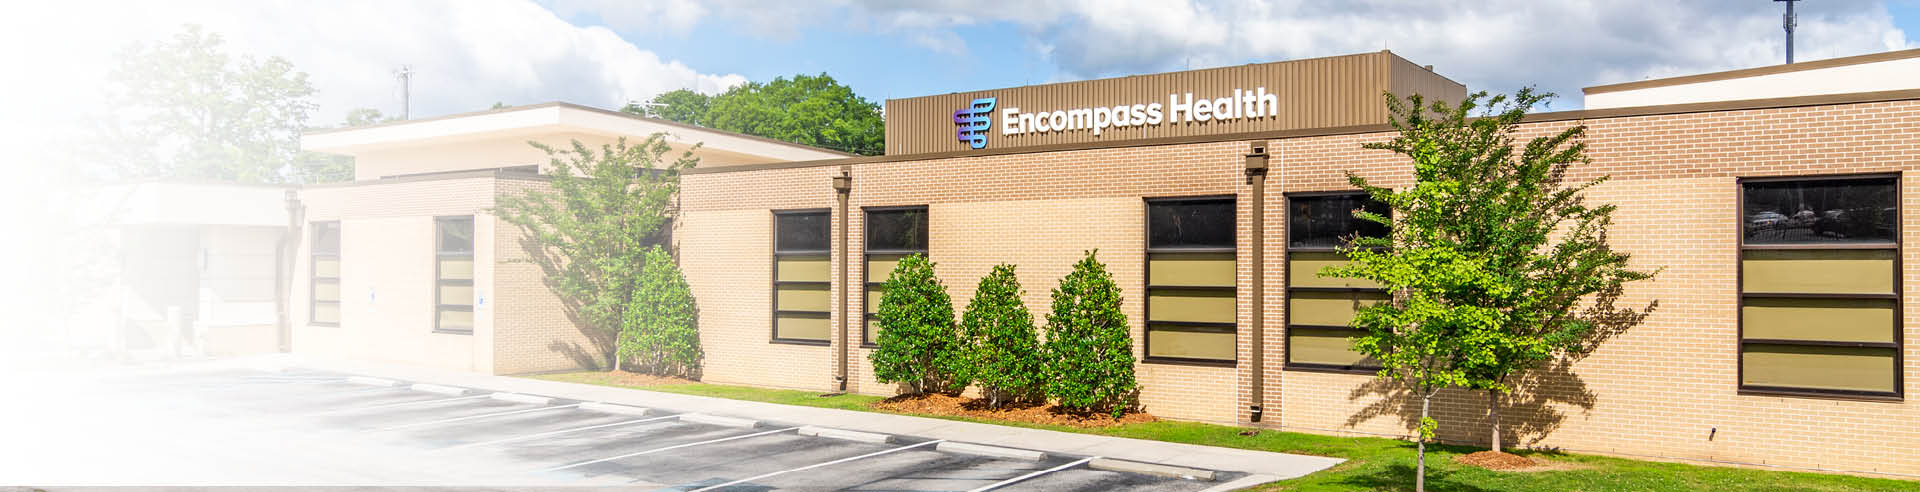 Encompass Health Rehabilitation Hospital of Chattanooga exterior